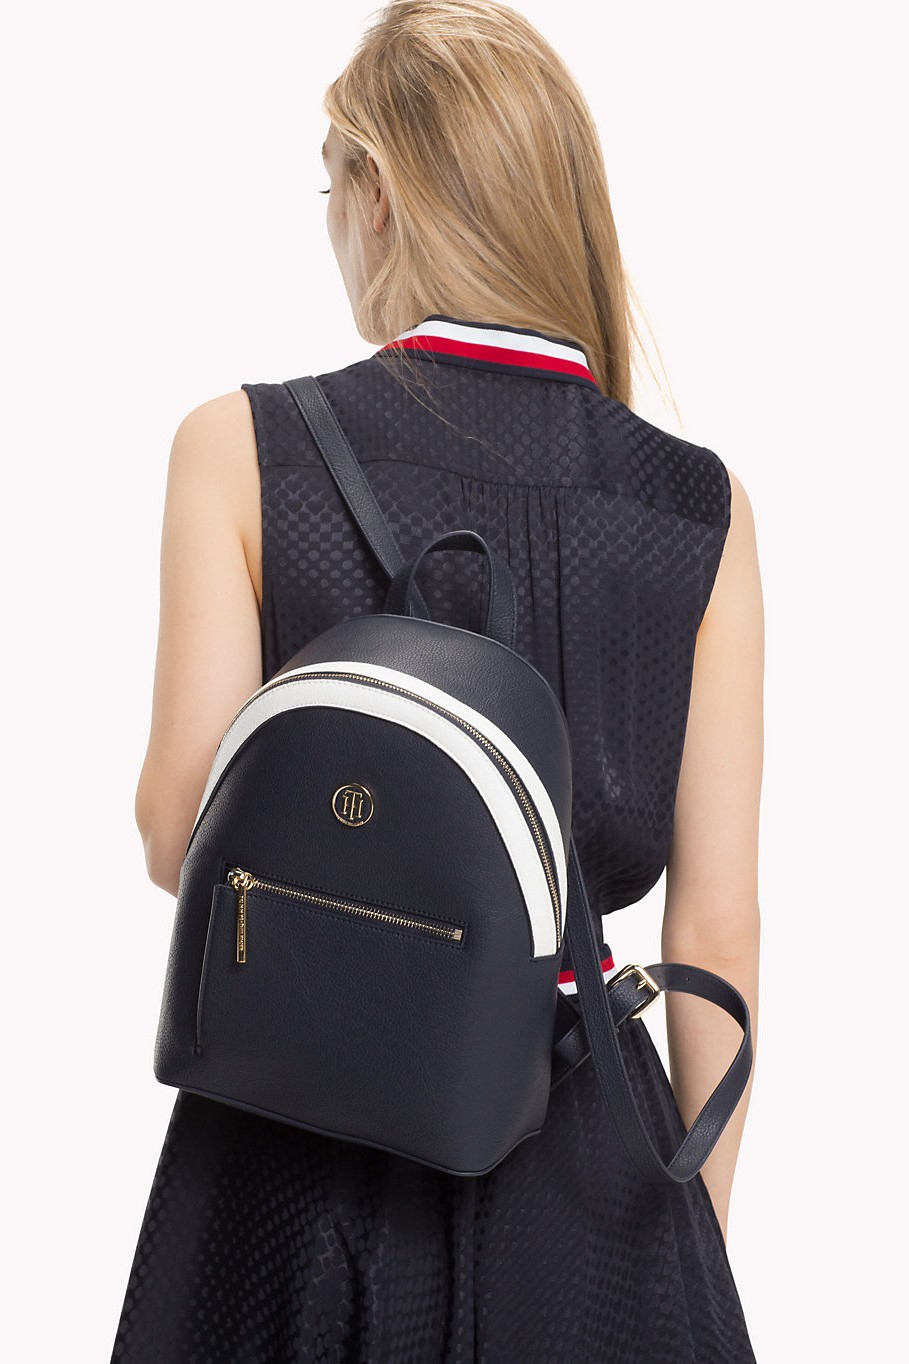 2dc985231a Tommy Hilfiger sötétkék hátizsák TH Core Mini Backpack - Női ...